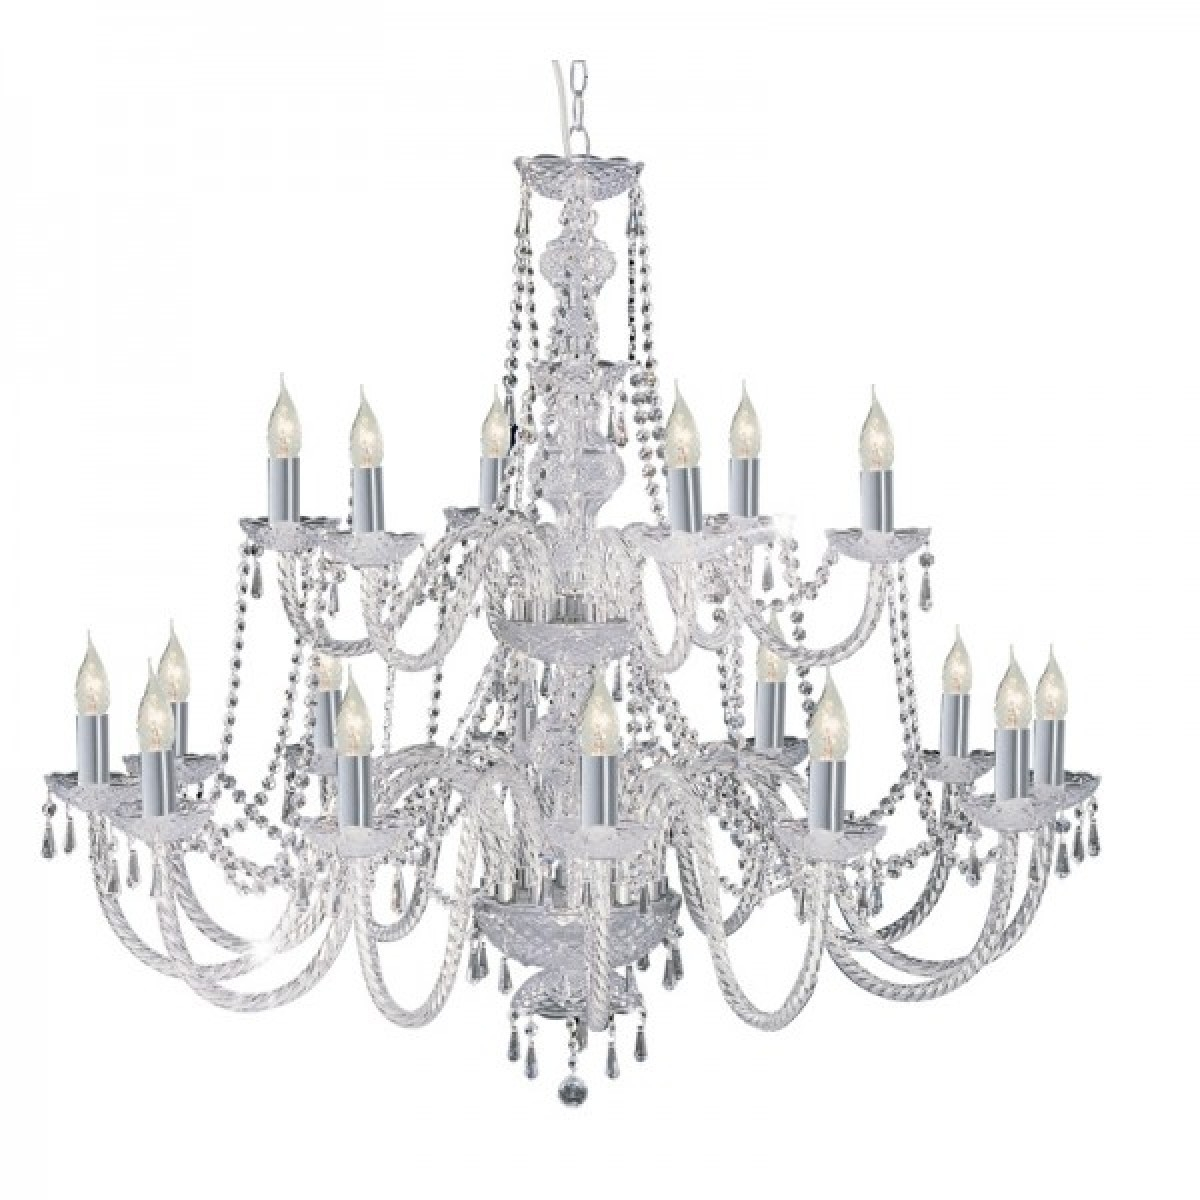 Hale Georgian Style Crystal Chandelier With Barley Twist Glass And With Chrome And Crystal Chandeliers (View 24 of 25)